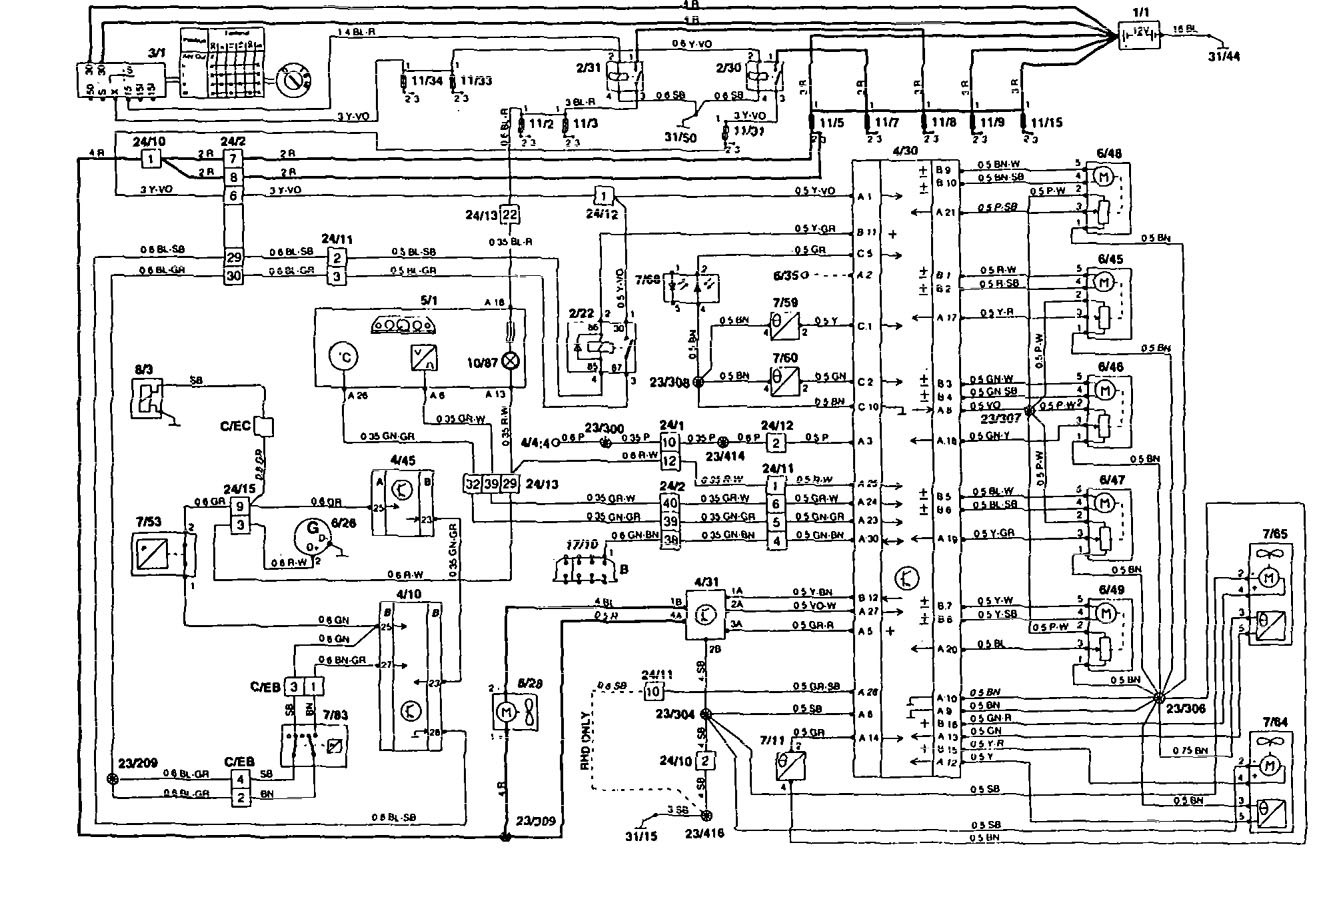 Volvo 850 Wiring Diagram on 1995 Volvo 850 Wiring Diagram